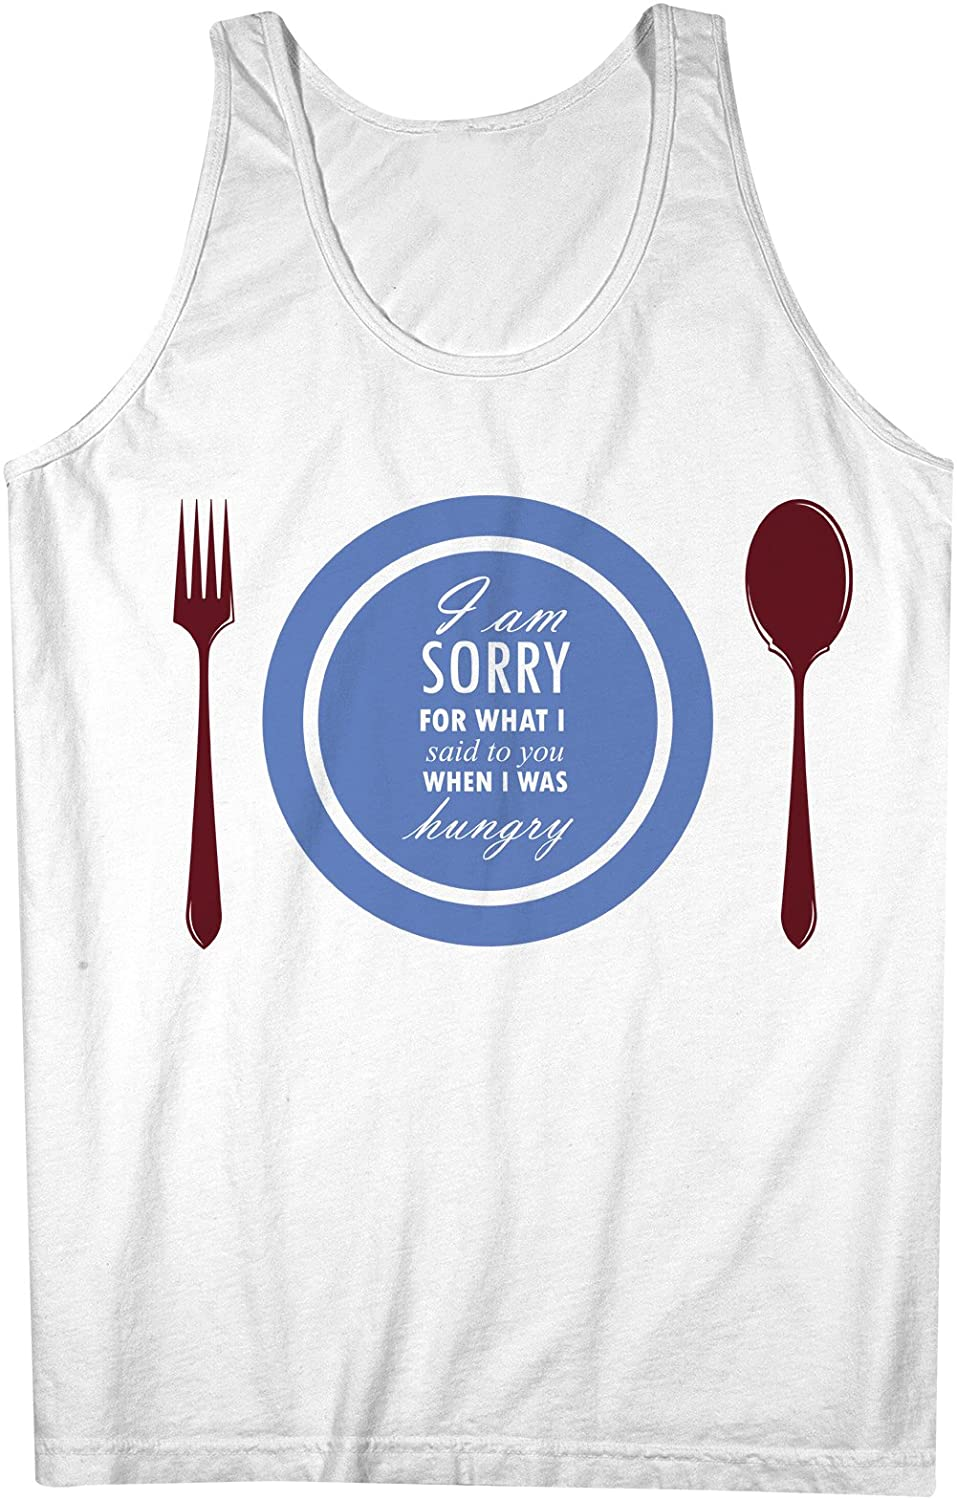 I Am Sorry For What I Said When I Was Hungry おかしいです 男性用 Tank Top Sleeveless Shirt